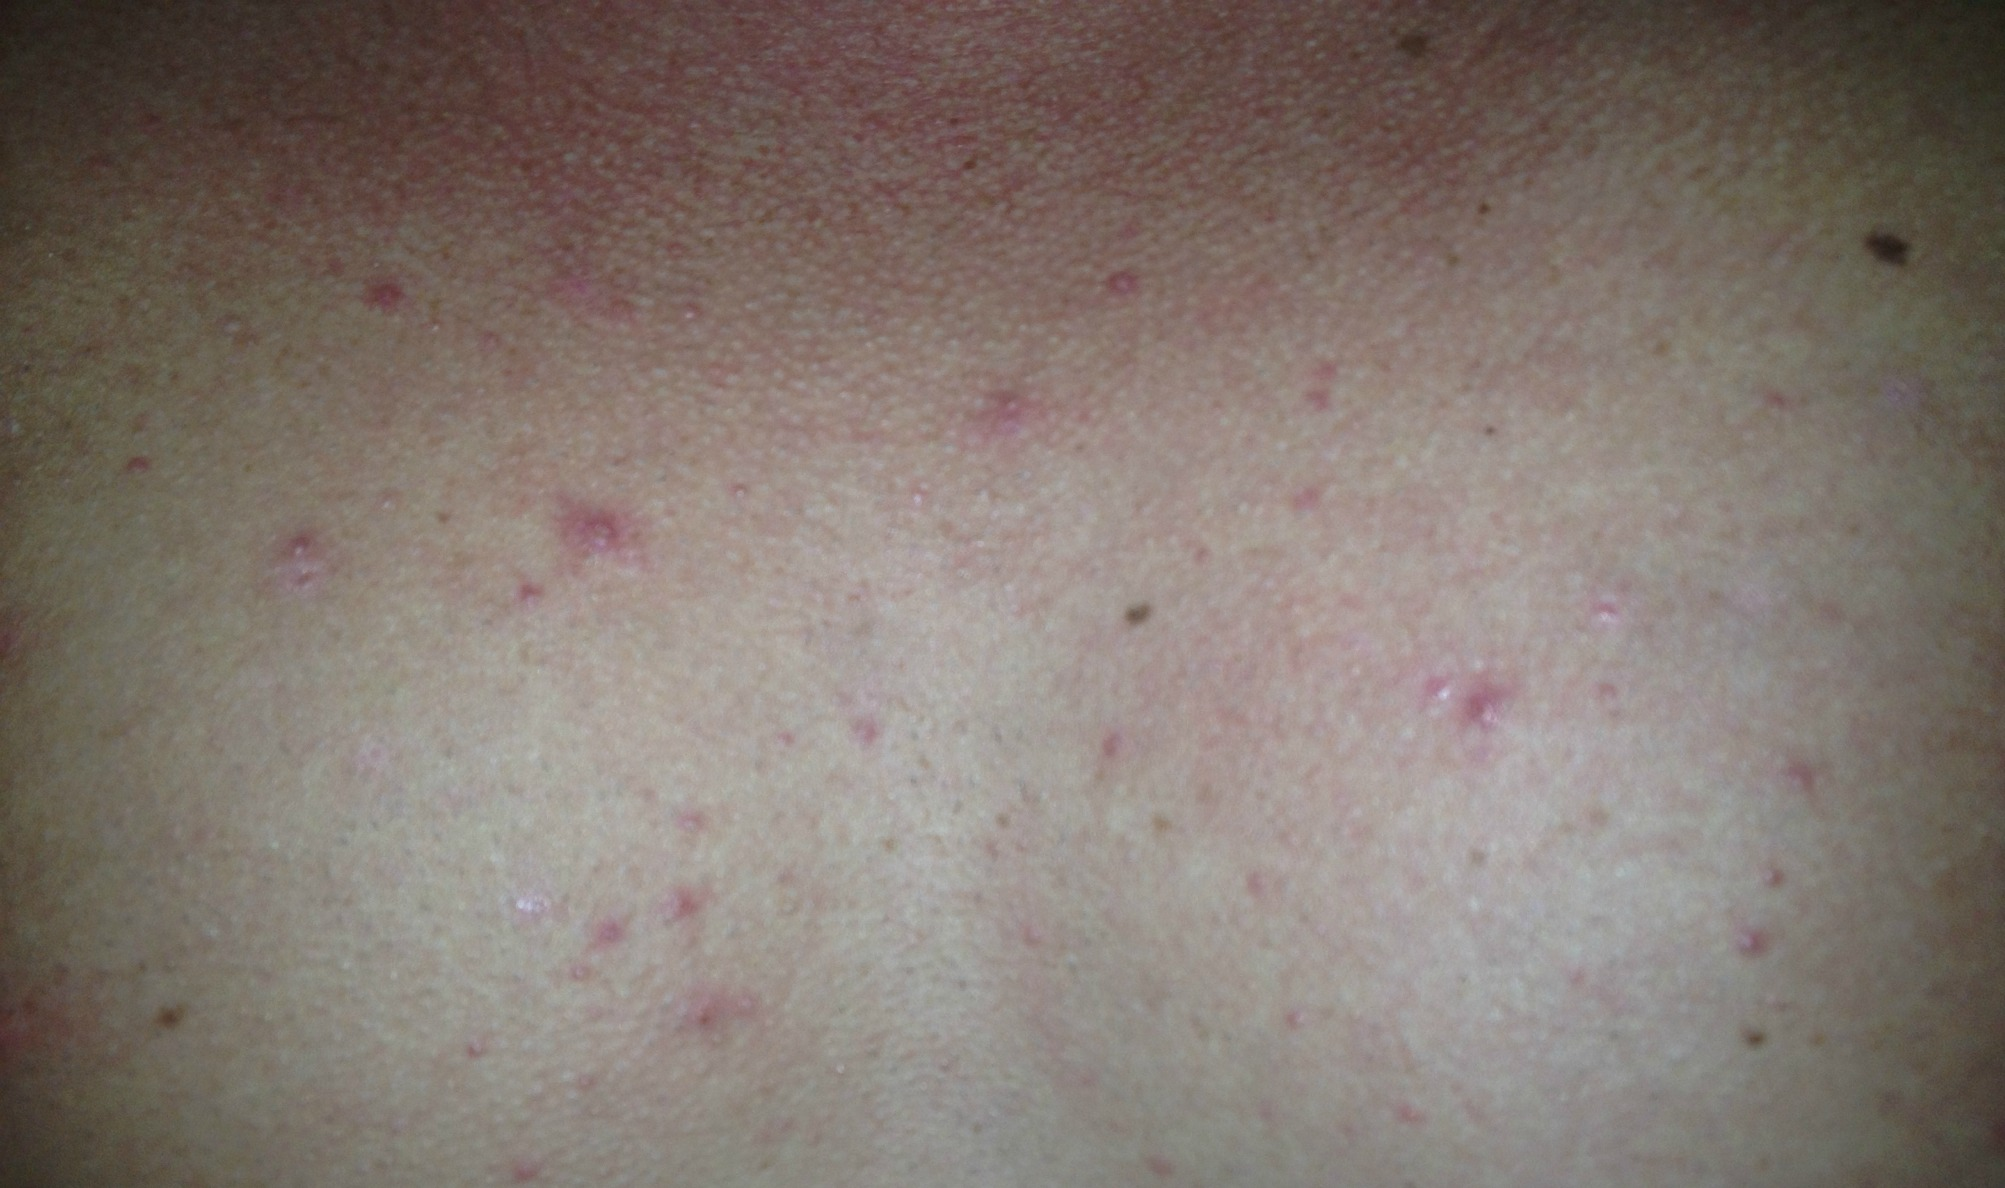 proactiv+-acne pictures